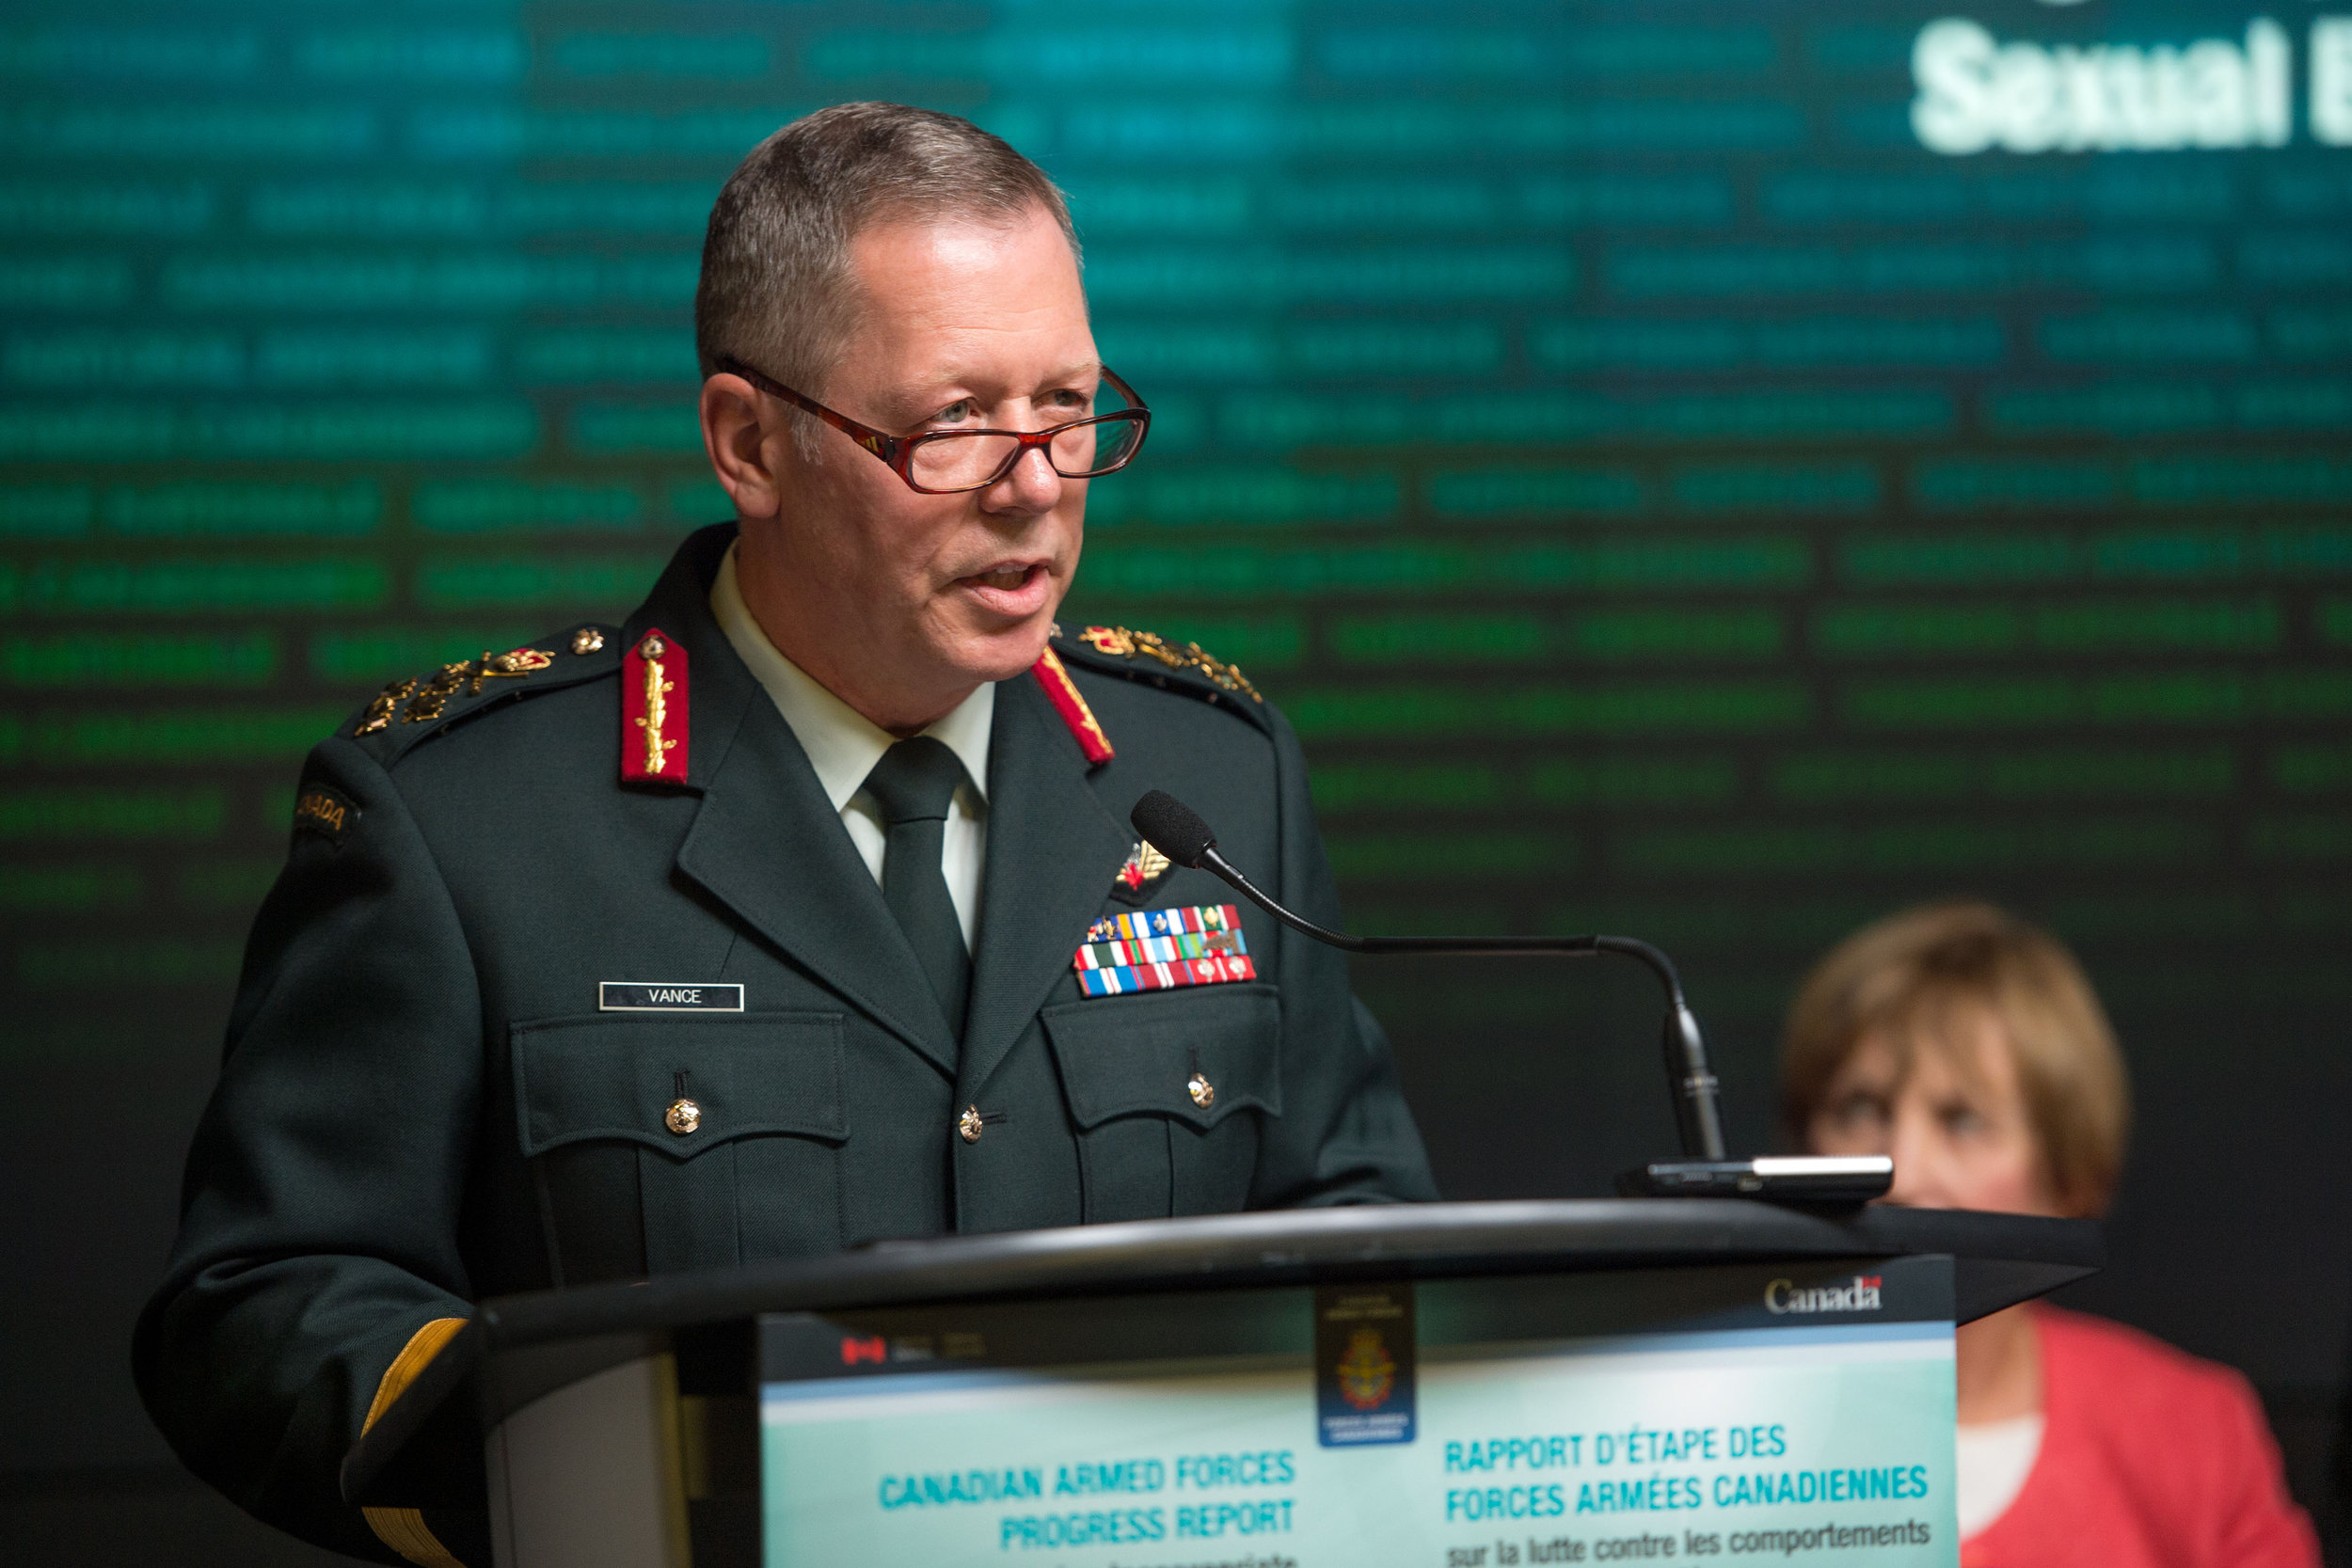 Chief of the Defence Staff, General Jonathan H. Vance, addresses the audience during an Operation HONOUR Progress Review held on August 30, 2016 at National Defence Headquarters in Ottawa, Ontario.  Photo: Corporal (Cpl) Michael MacIsaac  Canadian Forces Support Unit (Ottawa)/ Unité de soutien des Forces canadiennes (Ottawa)  SU12-2016-1062-001